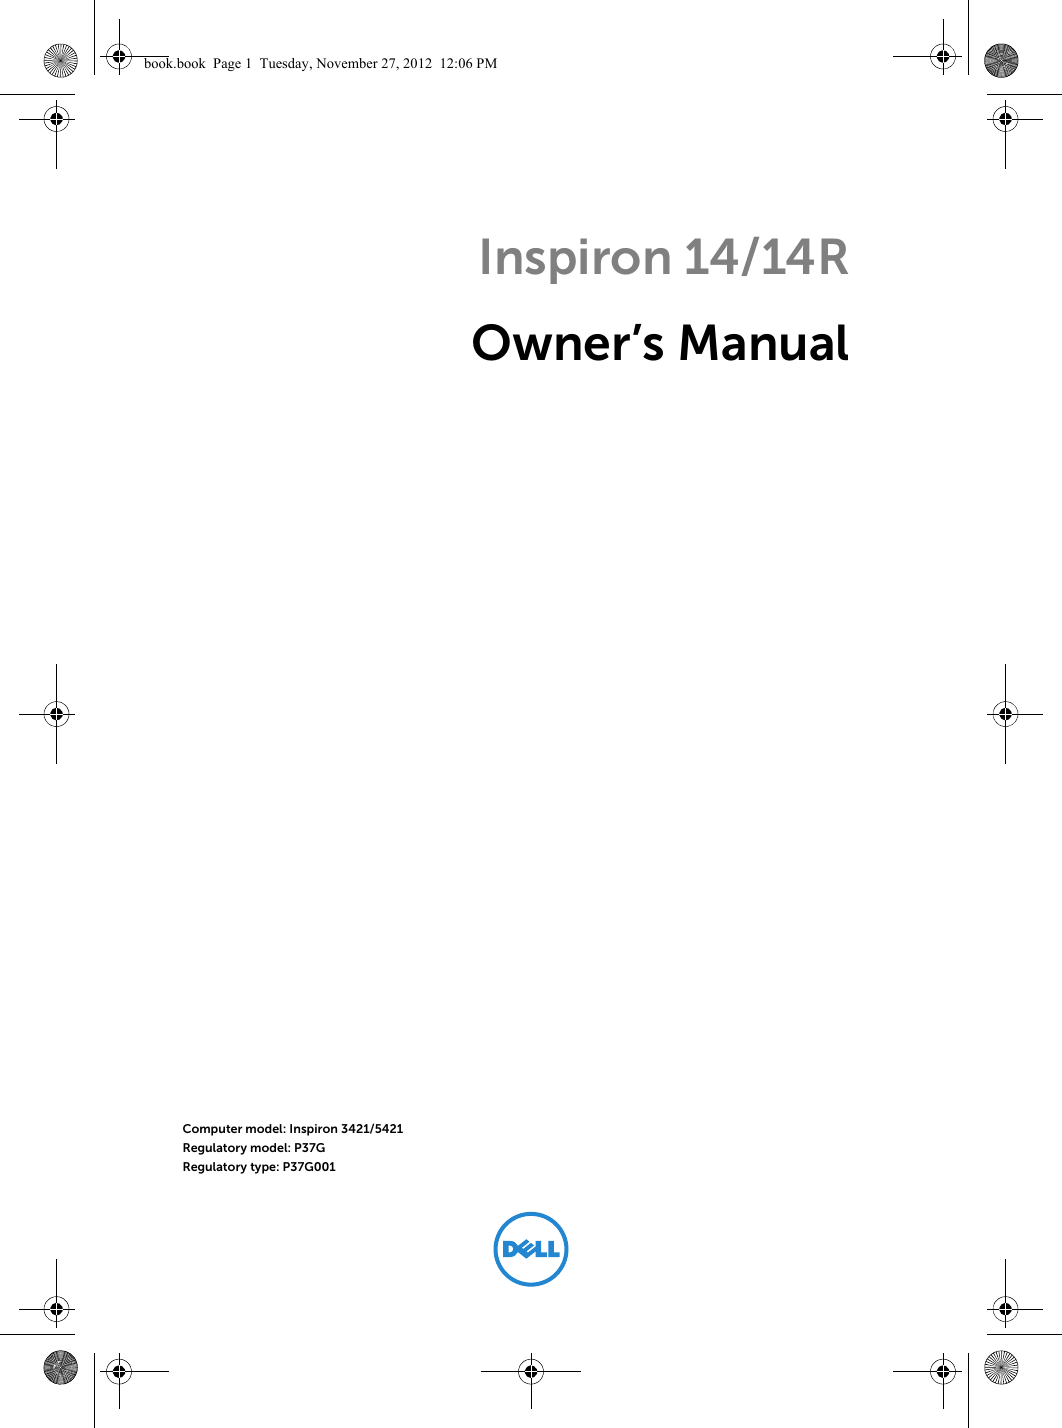 Blog Posts Trakpigi Aren39t Really Any Good Written Instructions So Here Is A Diagram Dell Inspiron 3421 Wifi Driver Windows 8